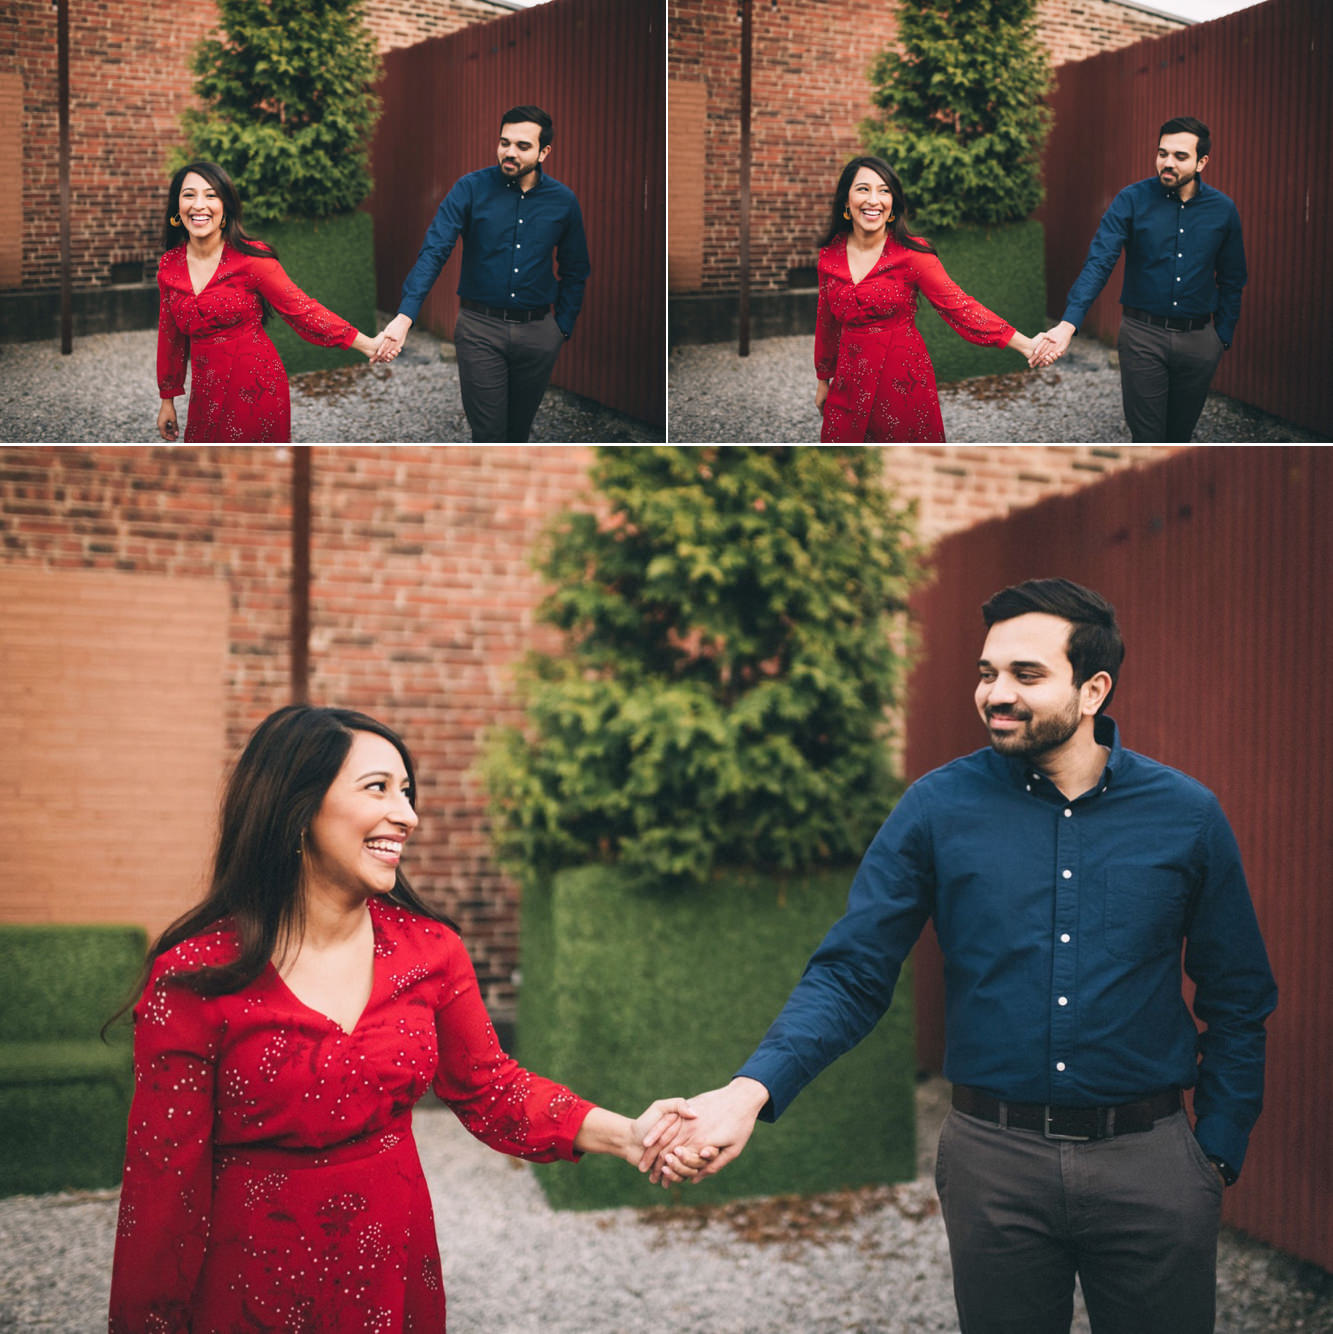 Nulu-Winter-Engagement-Session-By-Kentucky-Wedding-Photographer-Sarah-Katherine-Davis-Photography-12.jpg